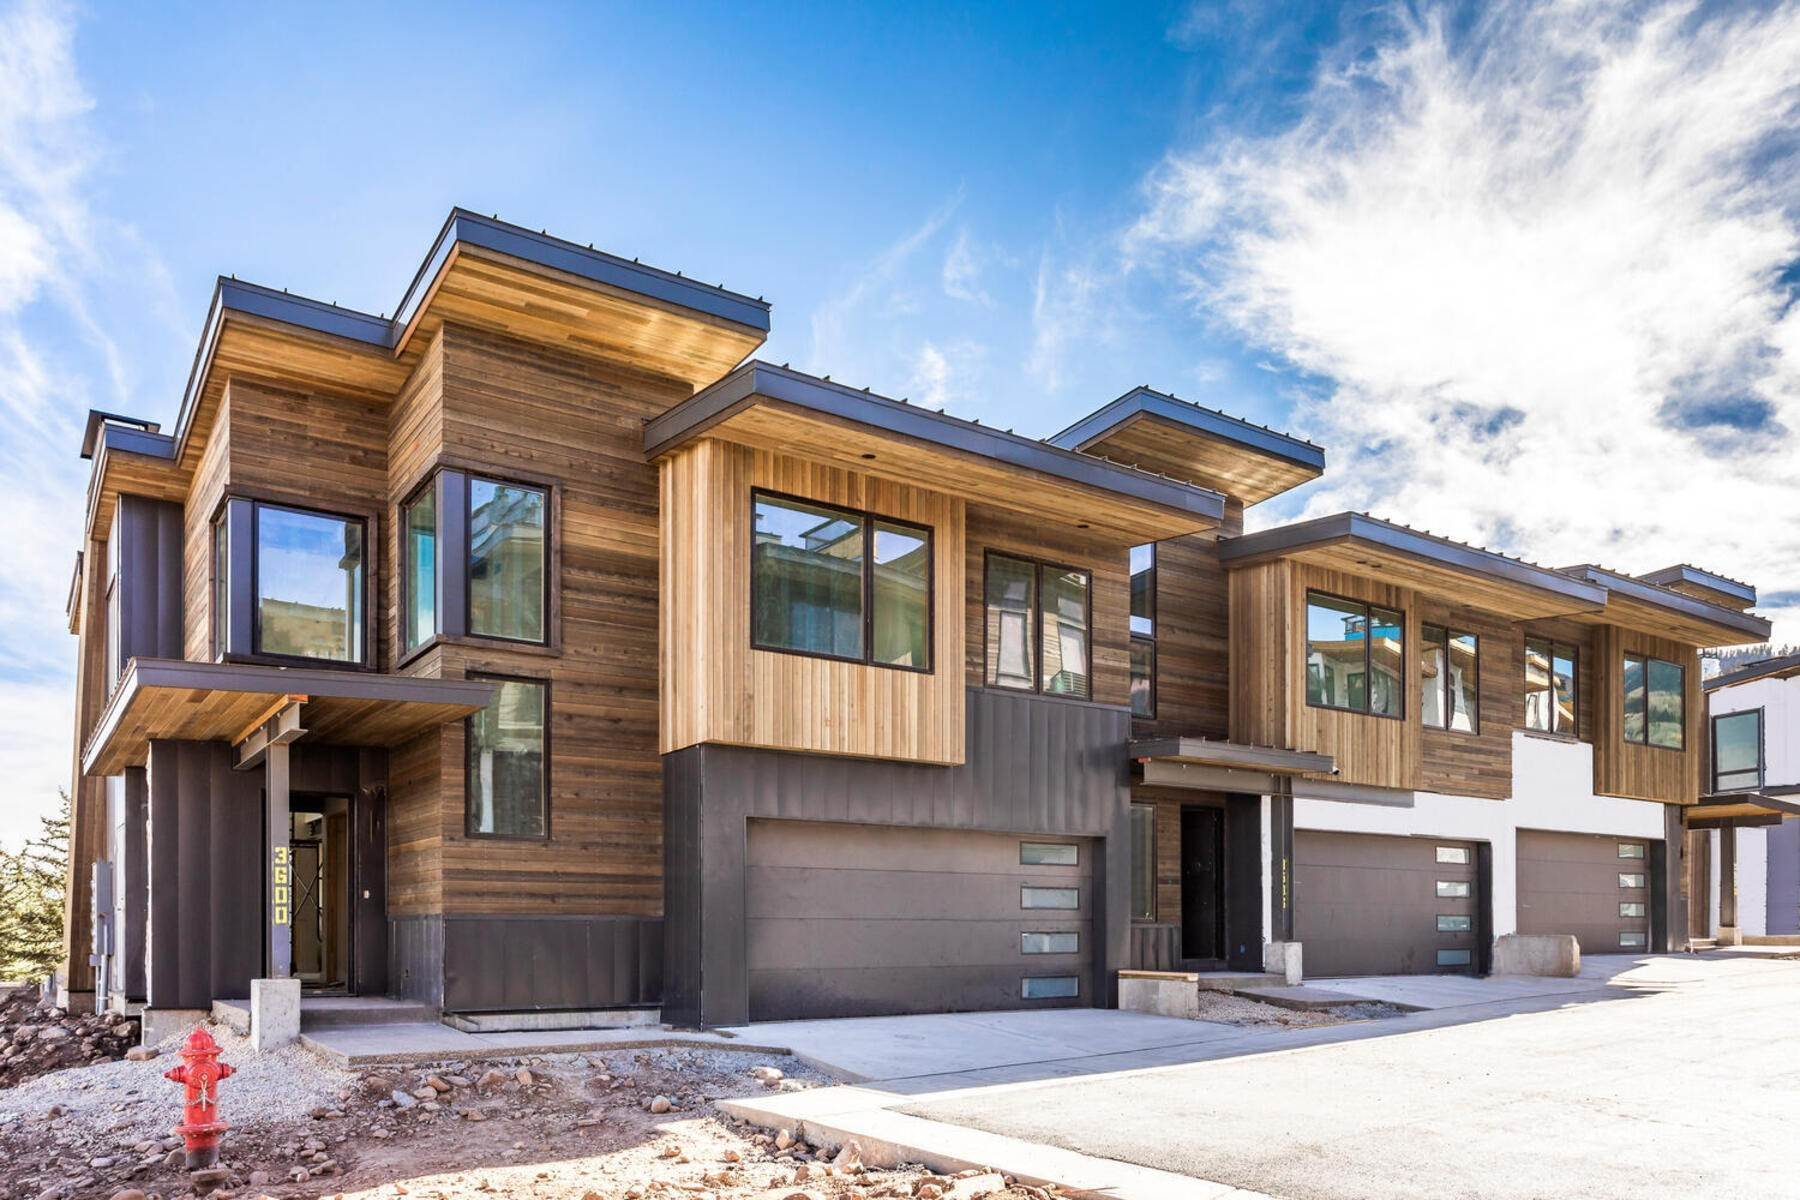 48. townhouses for Sale at Ski-In Town Homes in Canyons Village 3472 Ridgeline Drive Park City, Utah 84098 United States